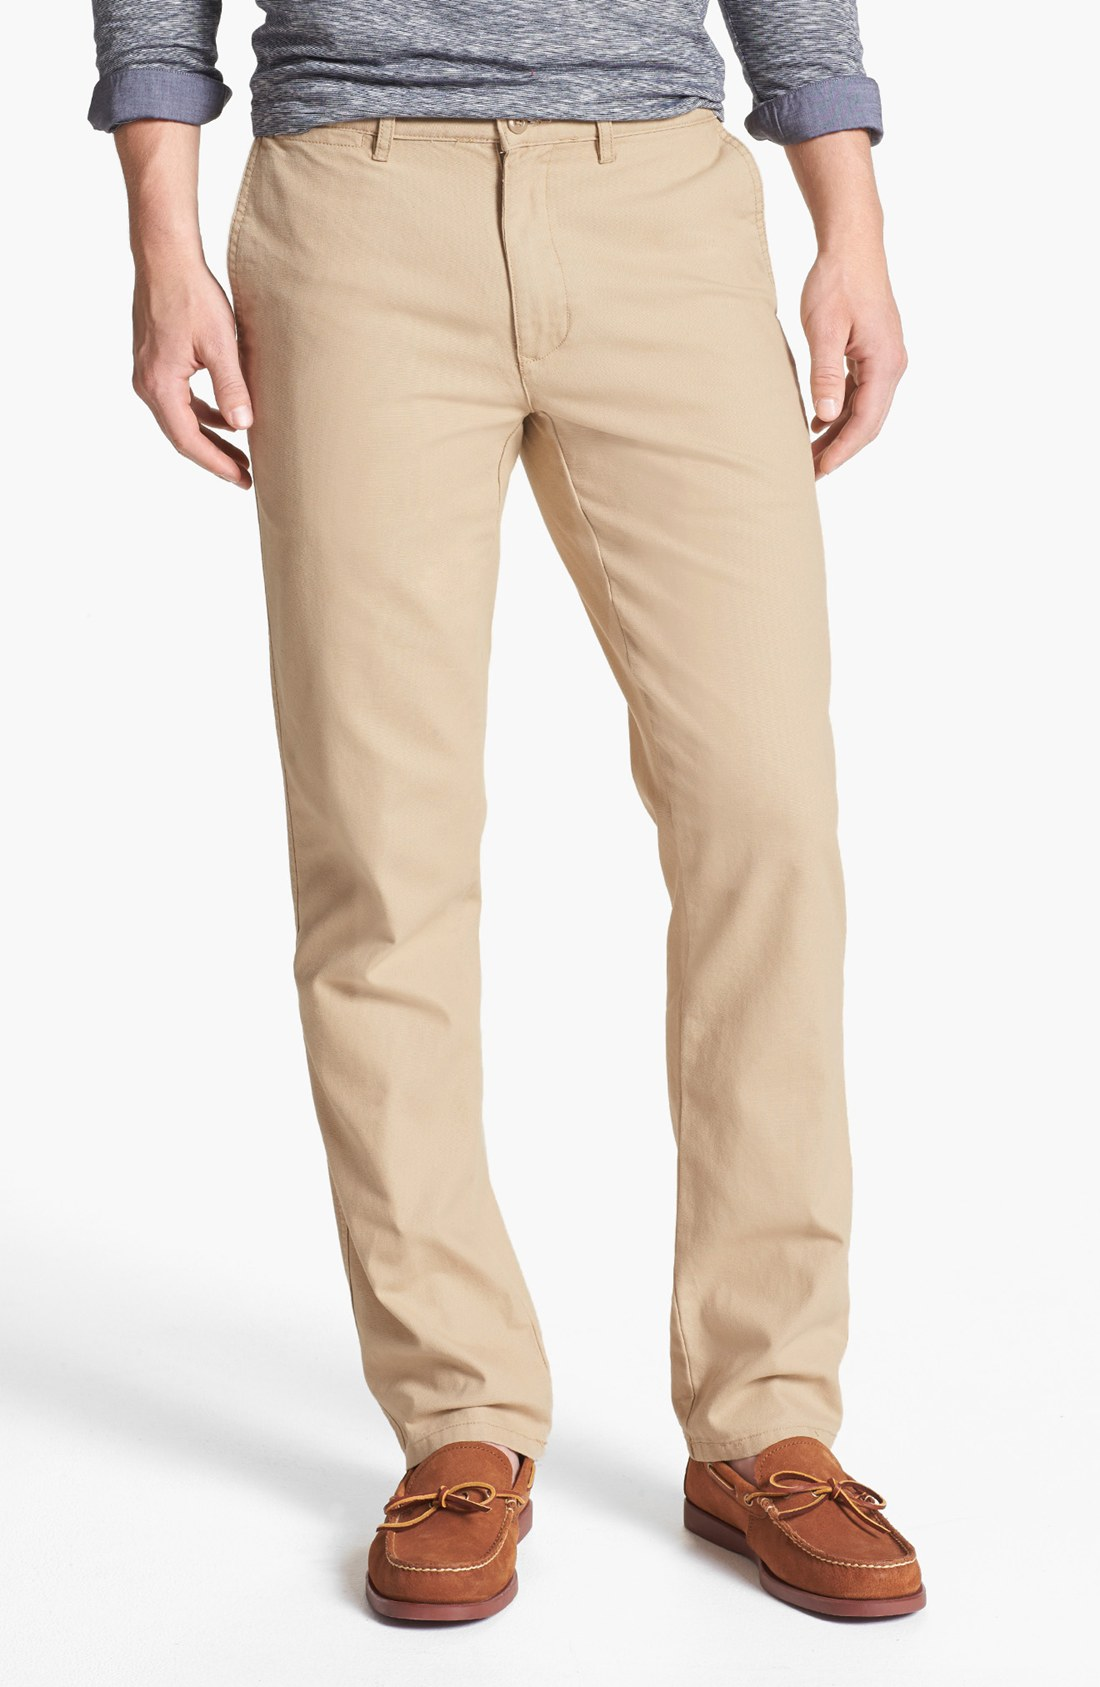 Find the best straight leg khaki pants from Dockers®. Browse our unrivaled selection of straight leg pants for men and find your next cant-live-without pair.